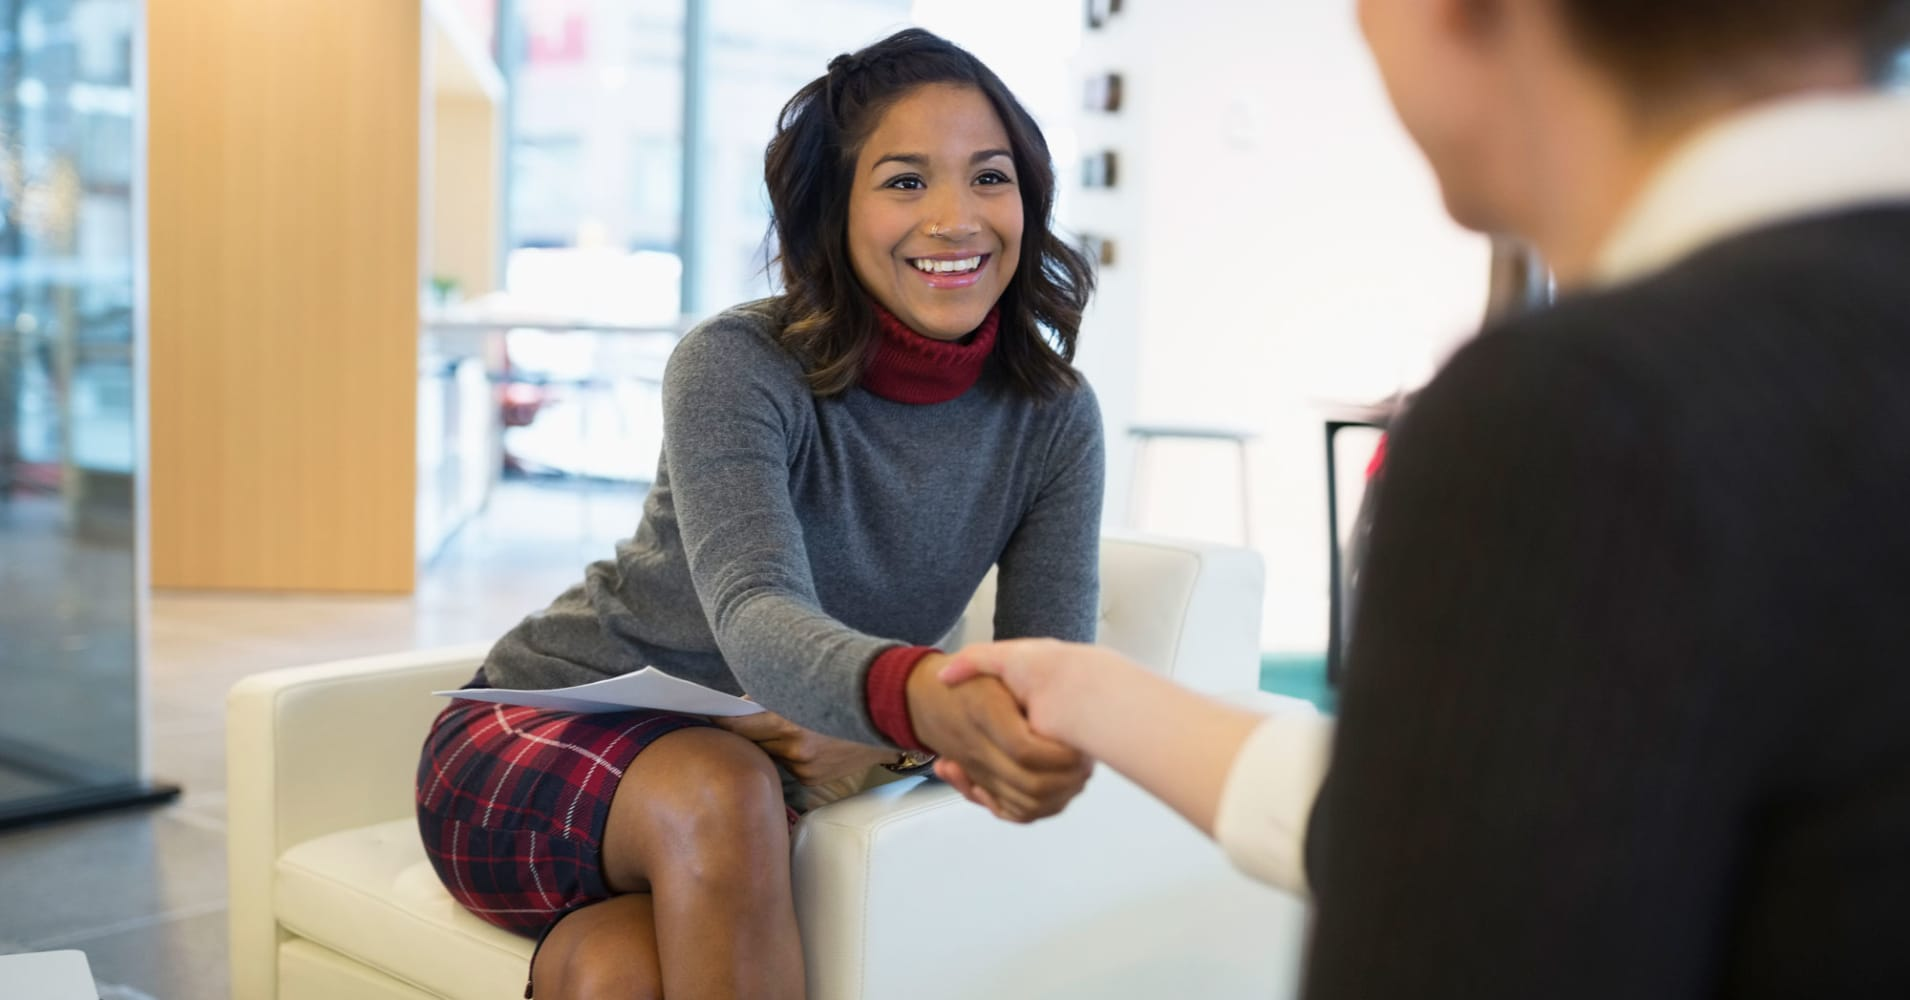 4 tips for negotiating your first salary when you have